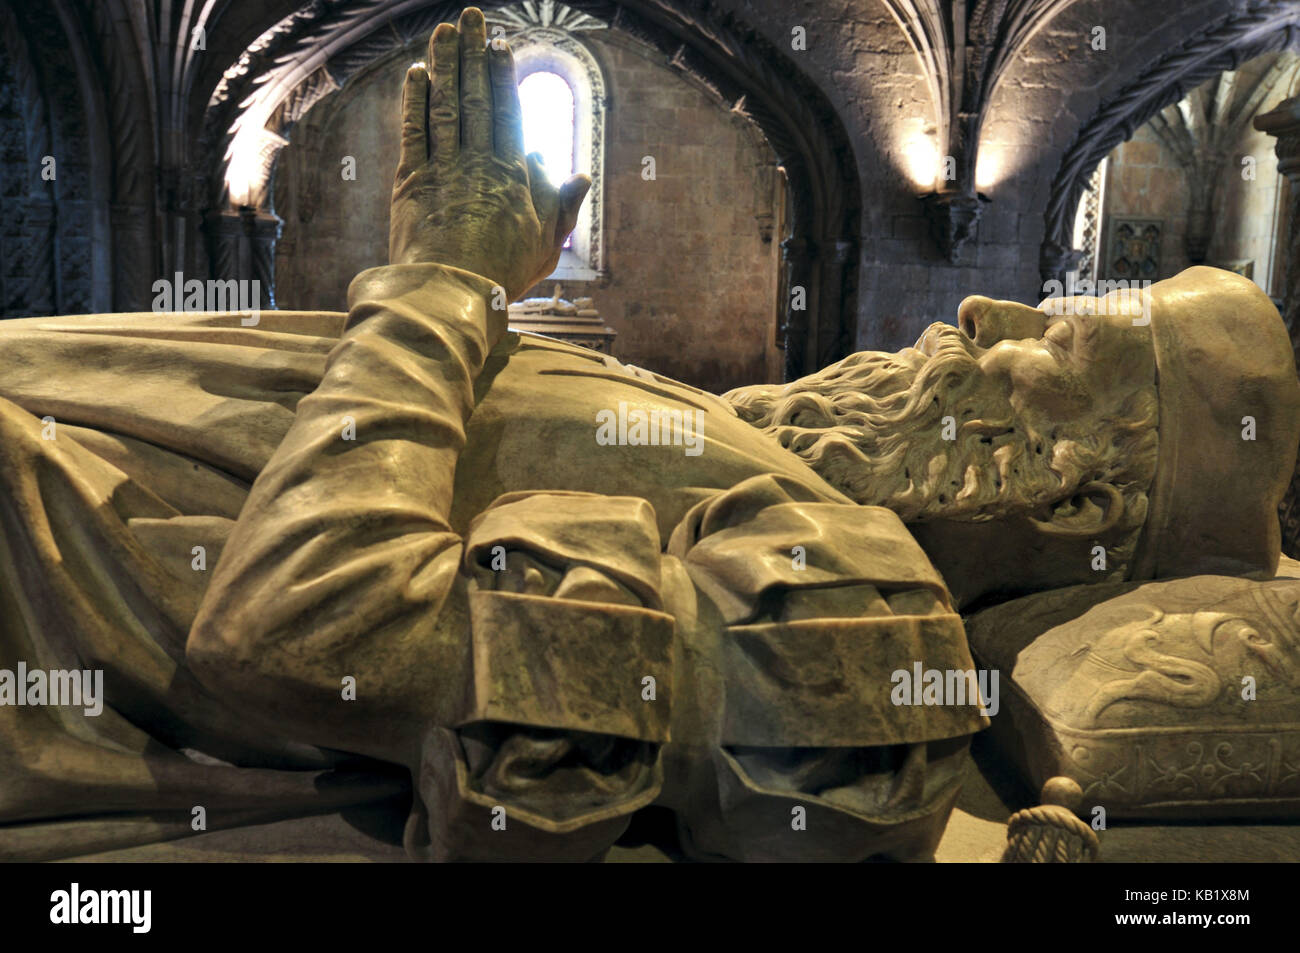 Portugal, Lisbon, tomb of the discoverer Vasco da Gama in the Hieronymuskloster in Belém, - Stock Image